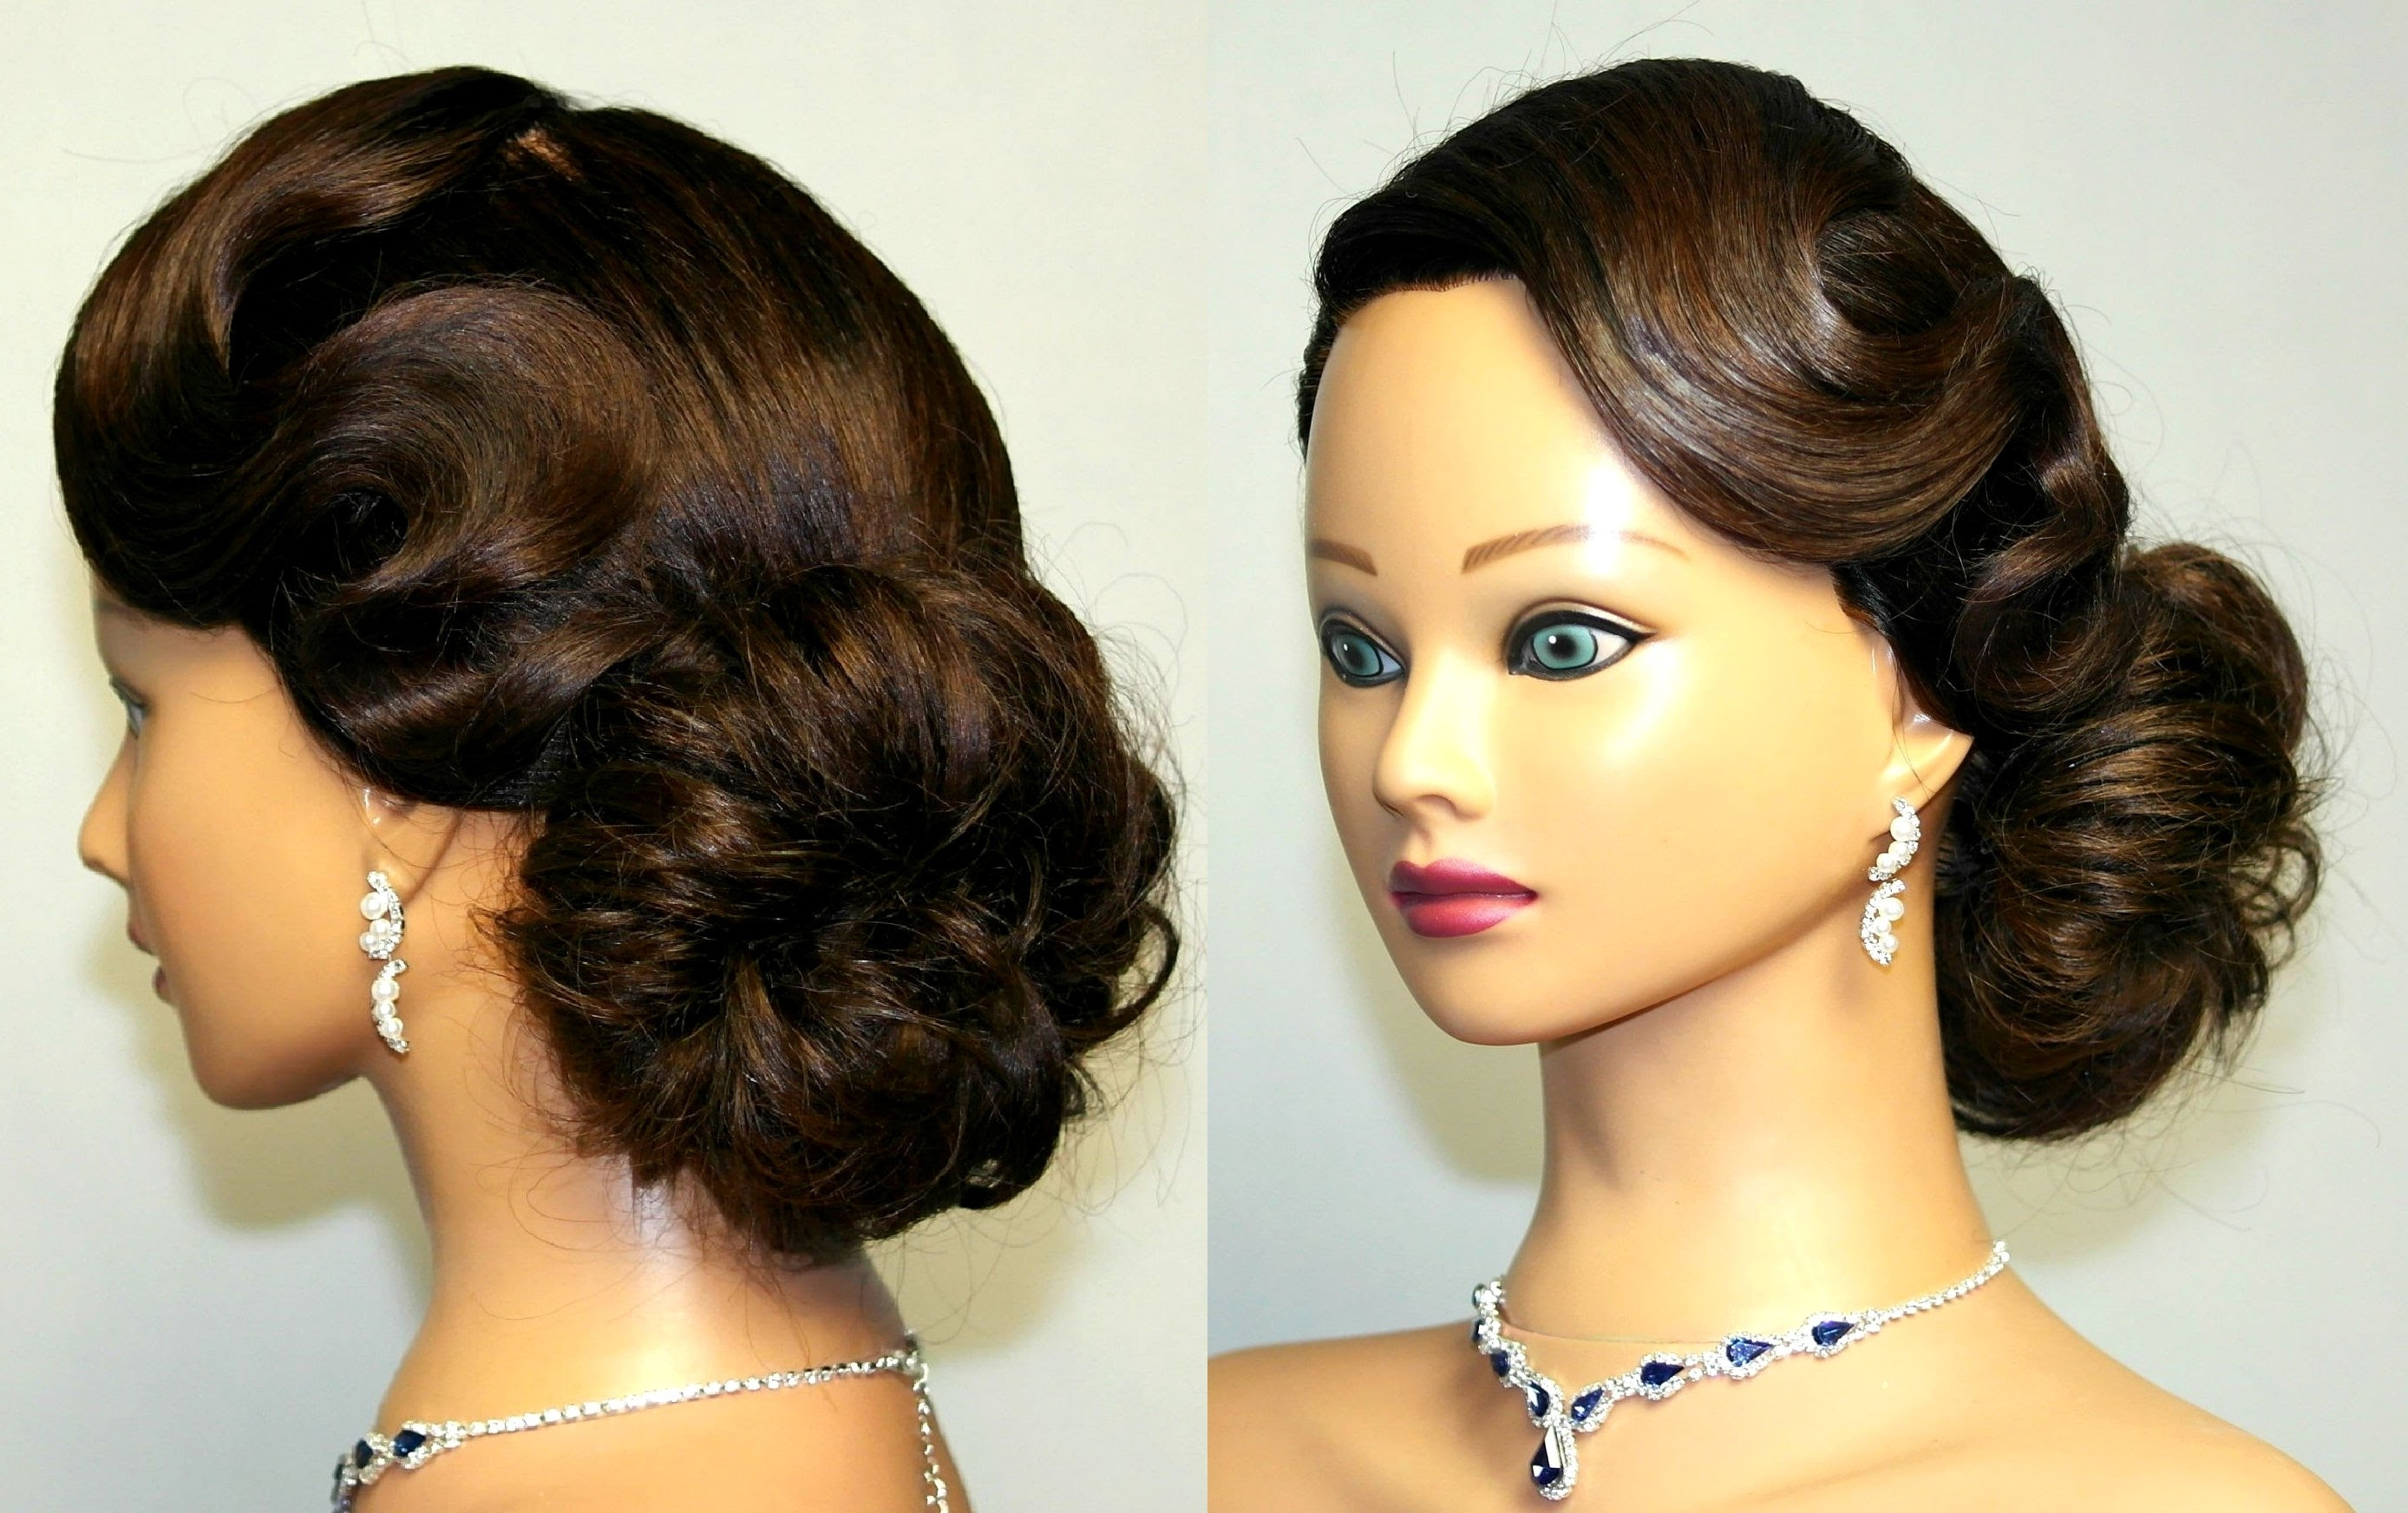 Black Braided Updostyles Pictures Vintage For Long Popular Pertaining To Black Updo Hairstyles For Long Hair (View 3 of 15)